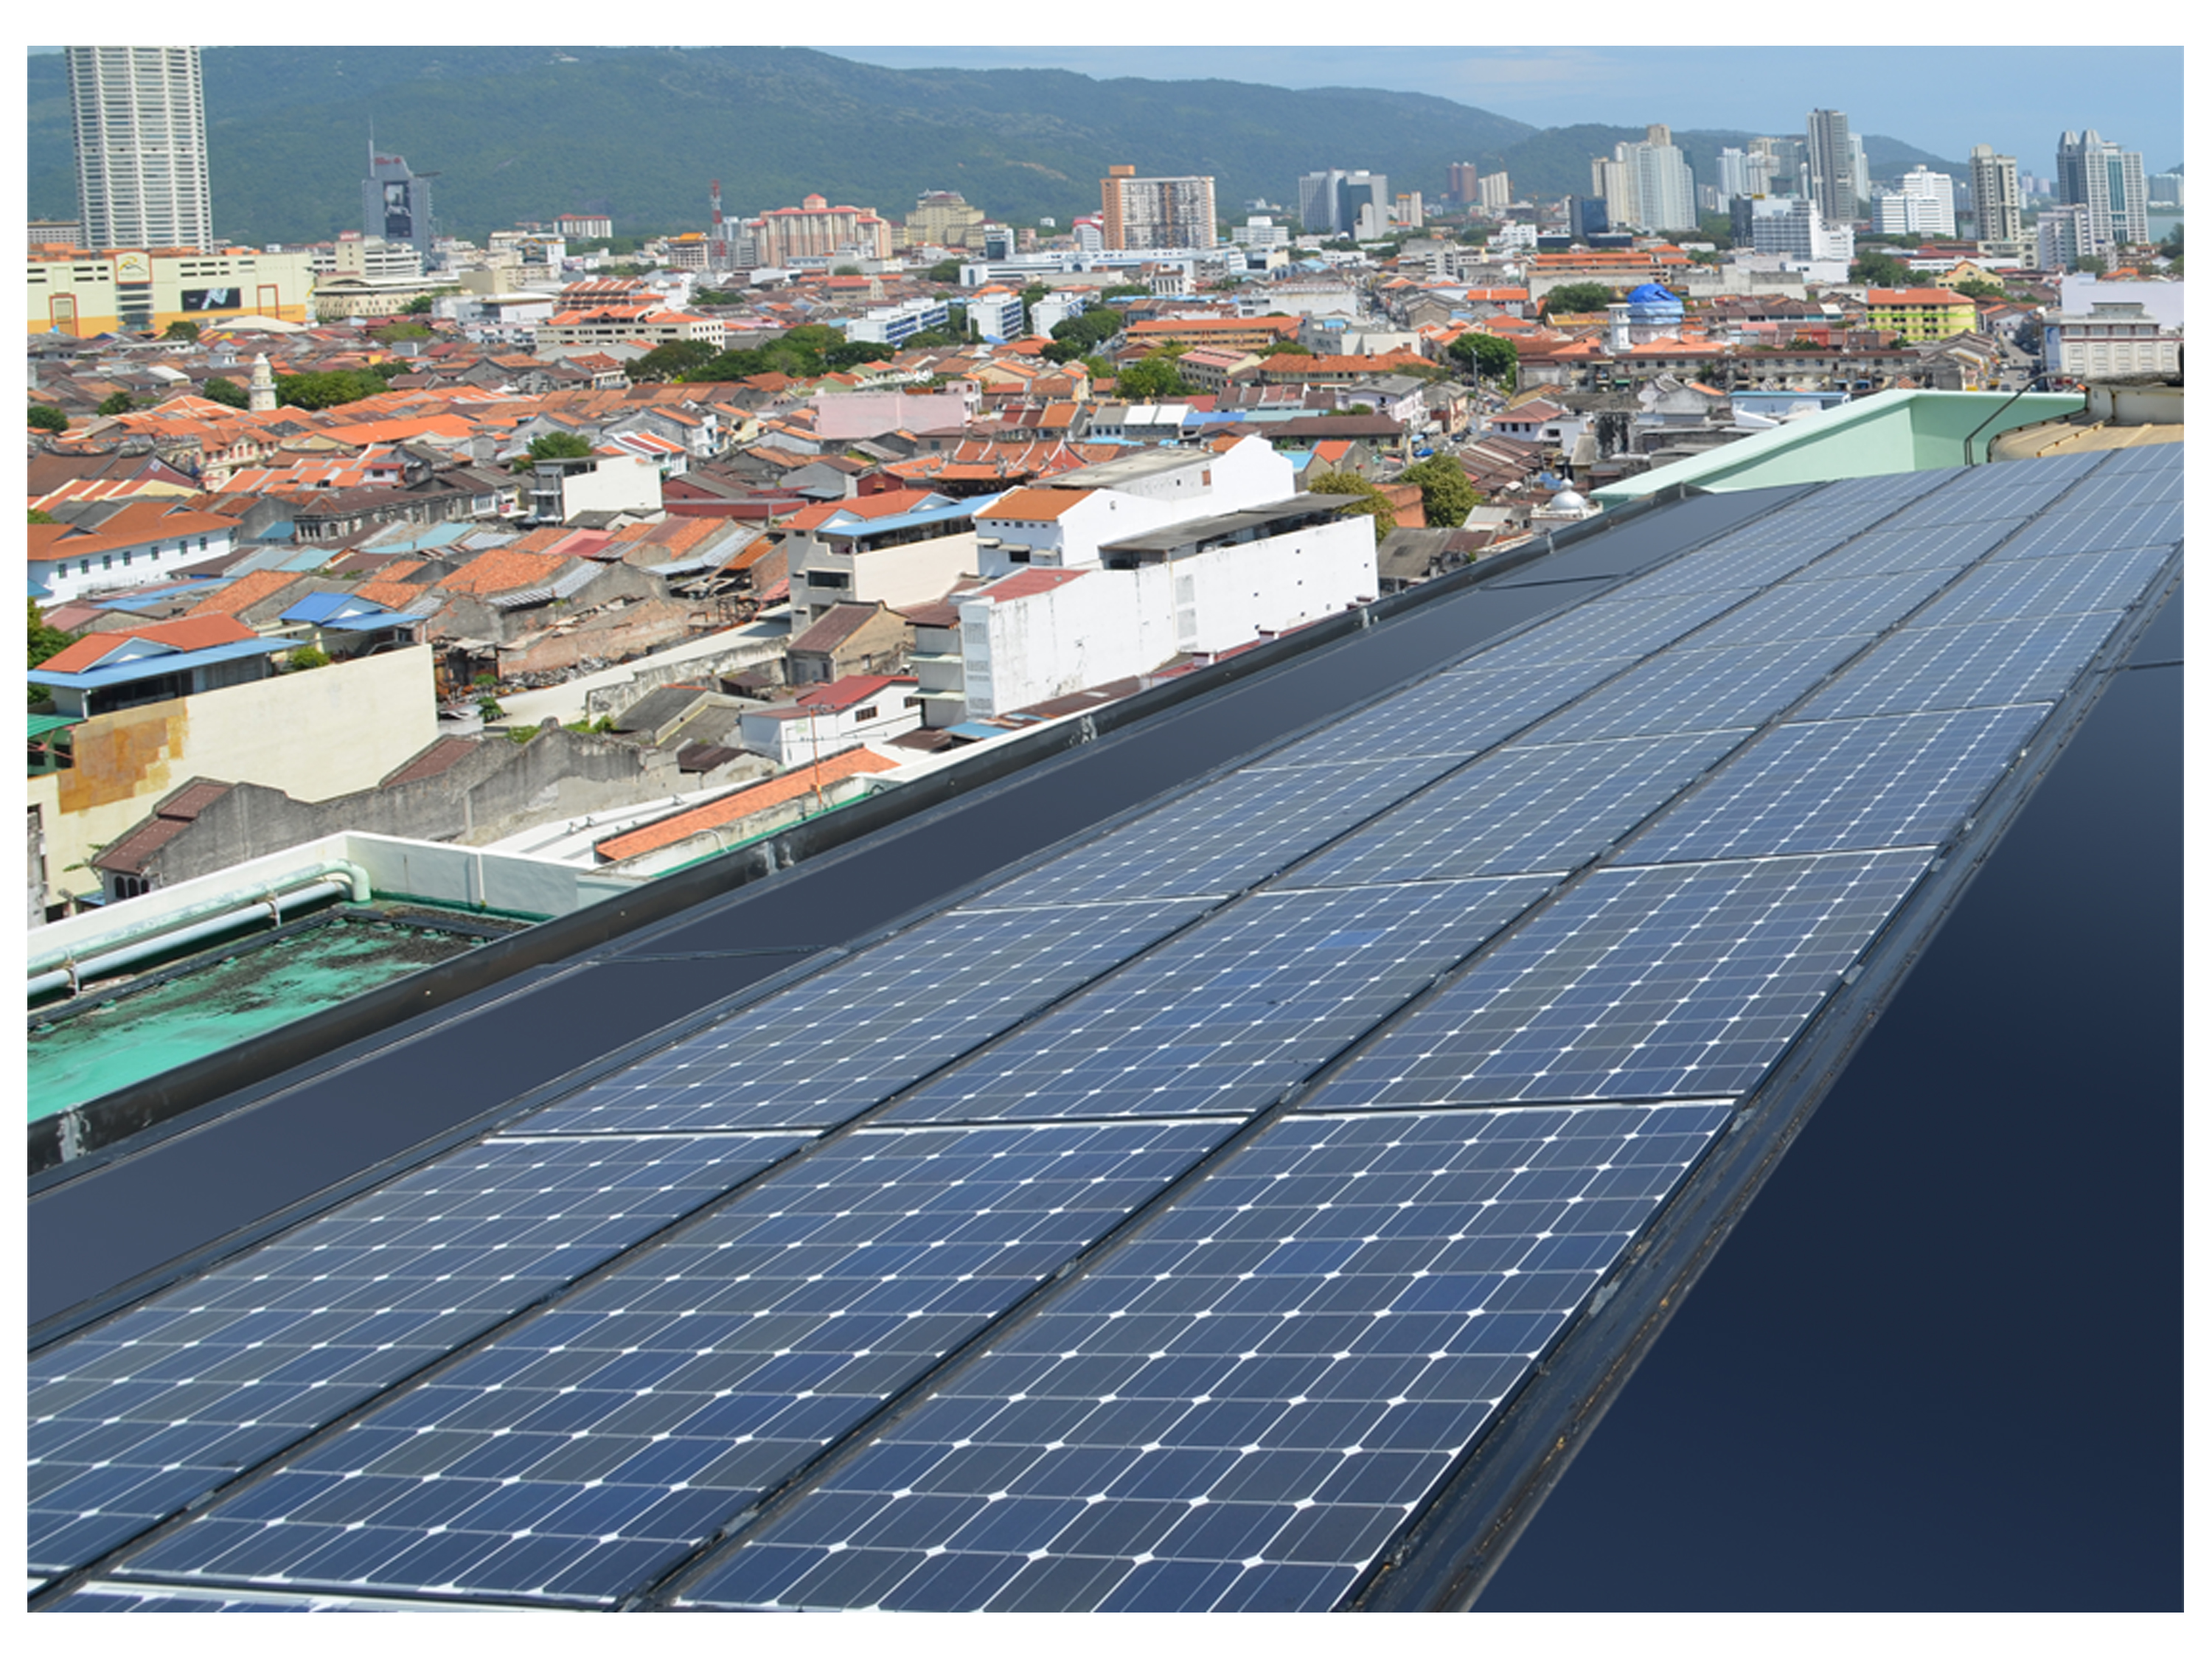 Solar BIPV MTT Housing Developer Office Penang 6kW